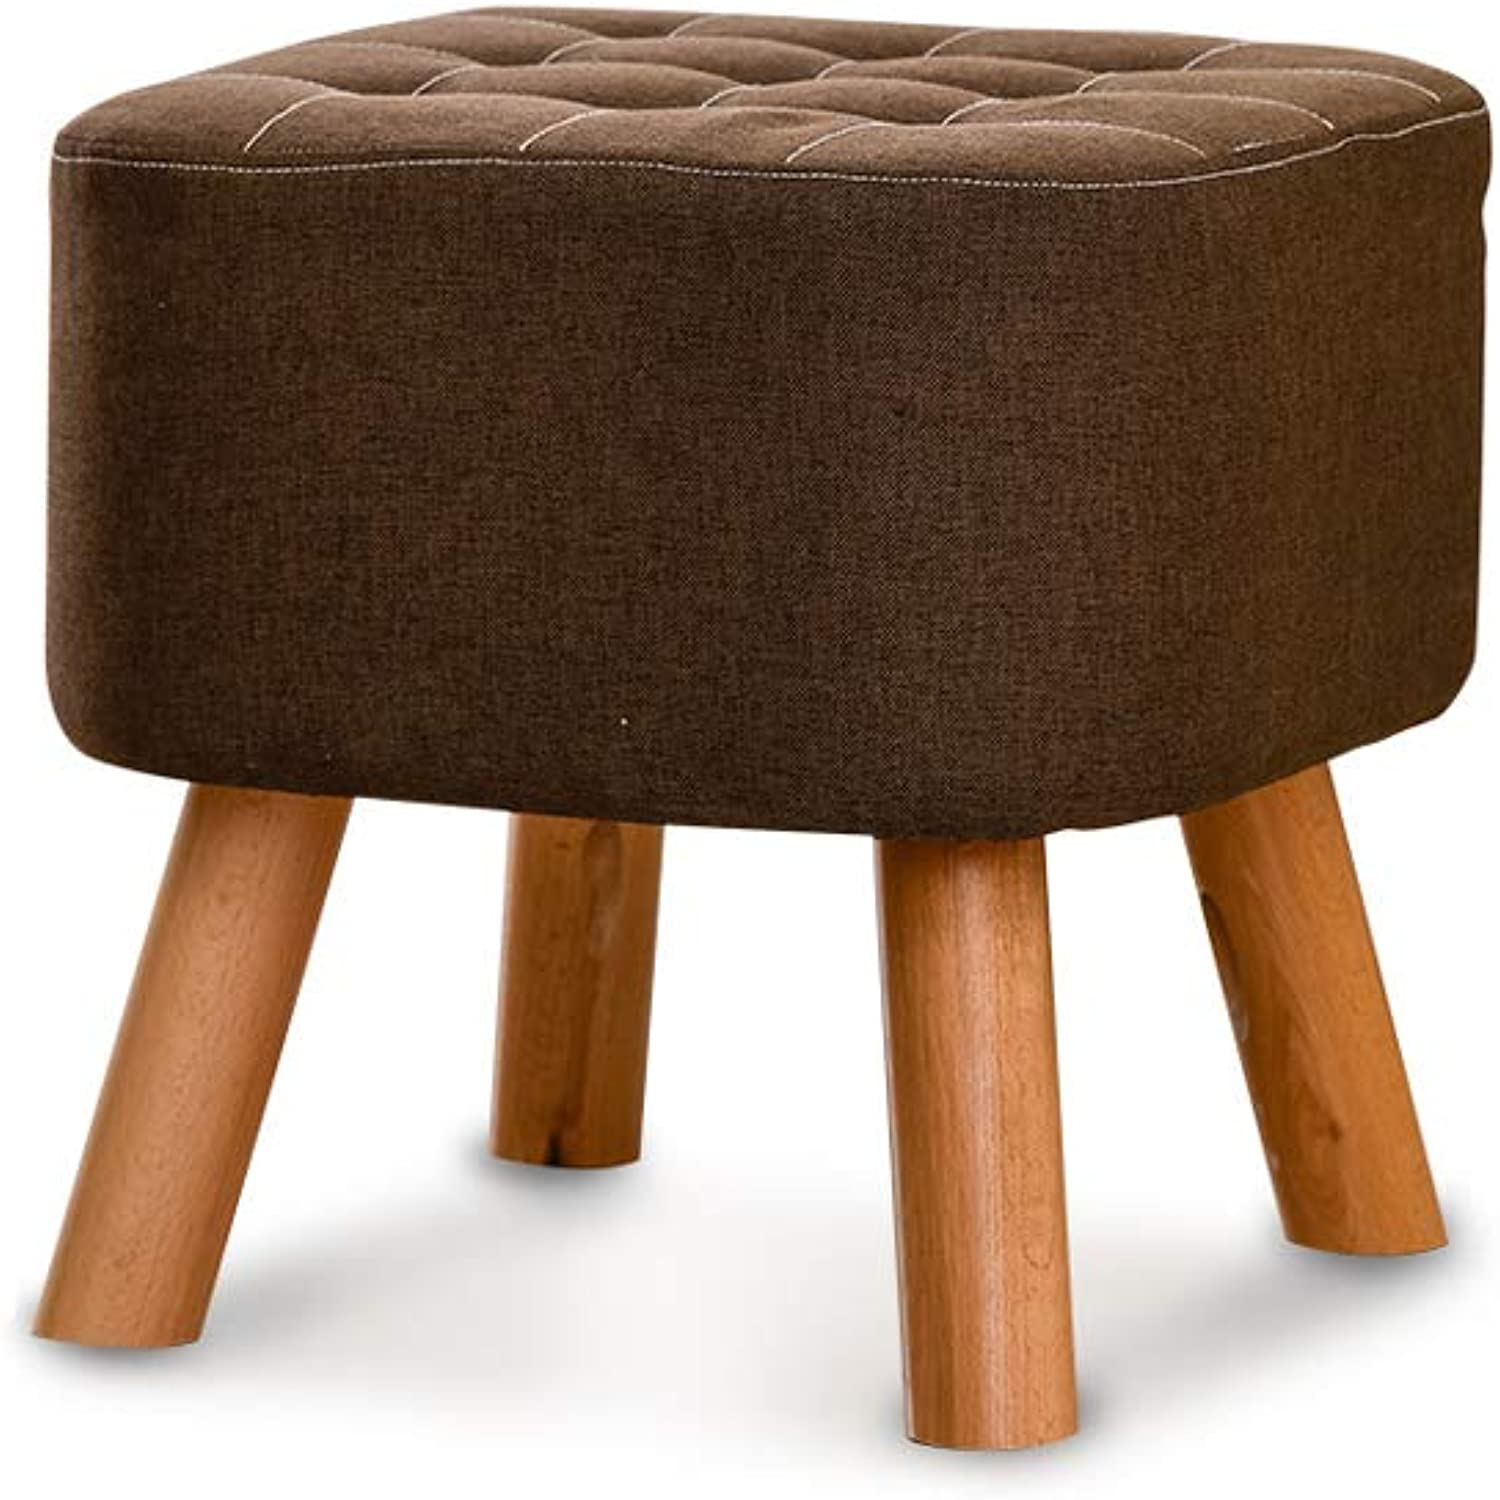 Solid Wood shoes Bench, Upholstered Comfortable Seat, Stylish shoes Bench, Square Seat, Wooden Leg (color   Brown)